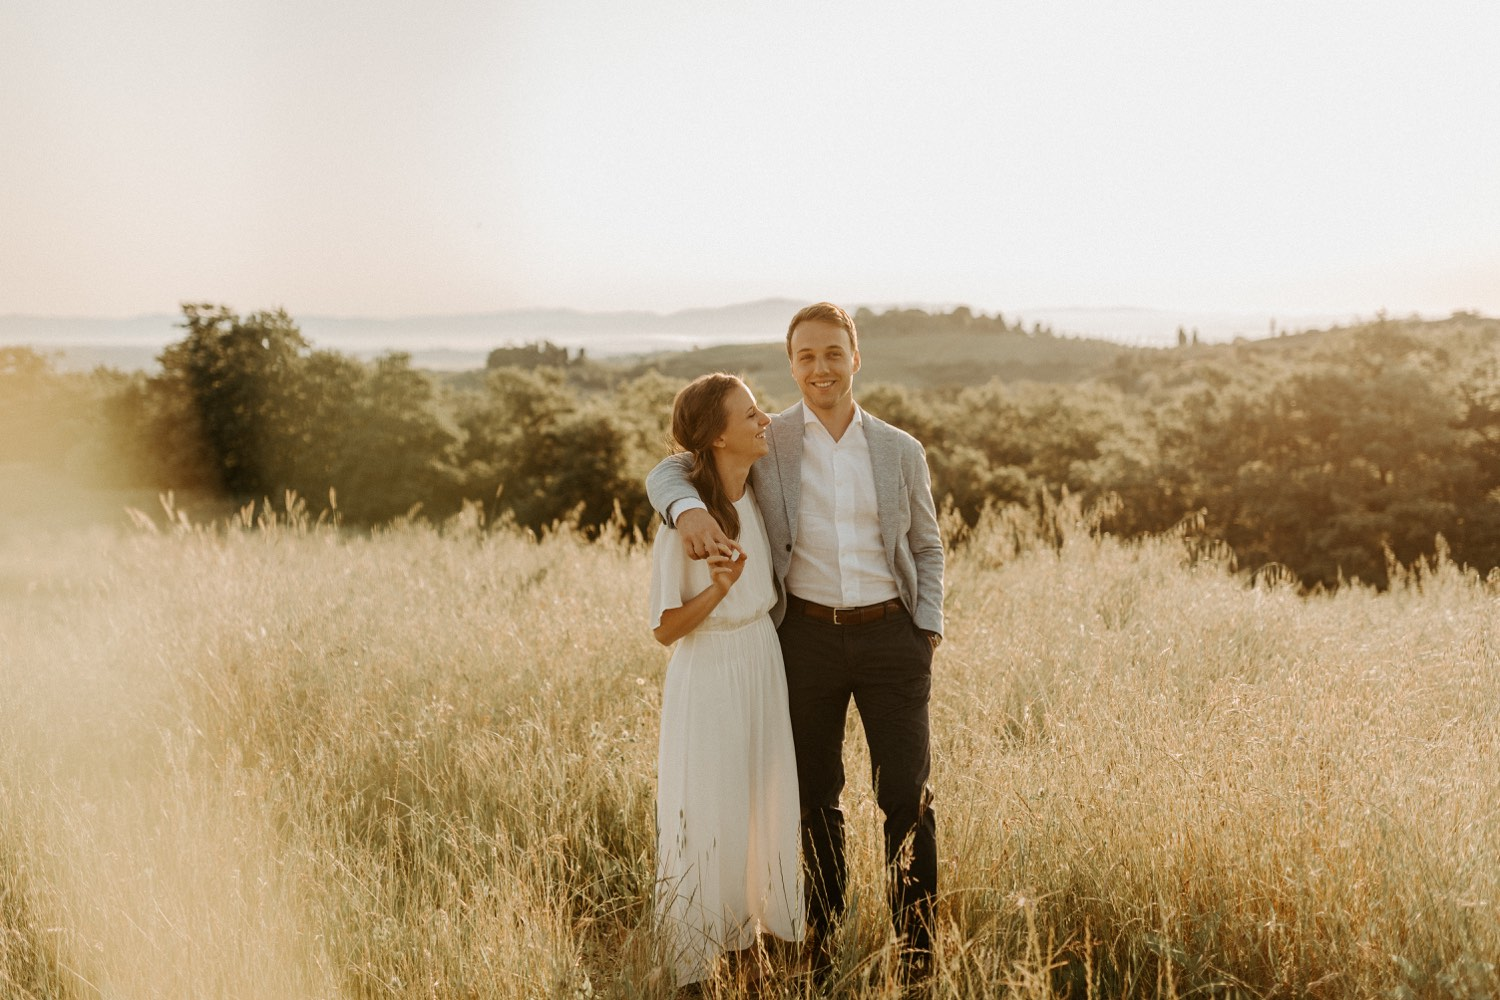 01_ali-dirk-pre-wedding-060_tuscany_siena_destination_wedding_italy_photography.jpg